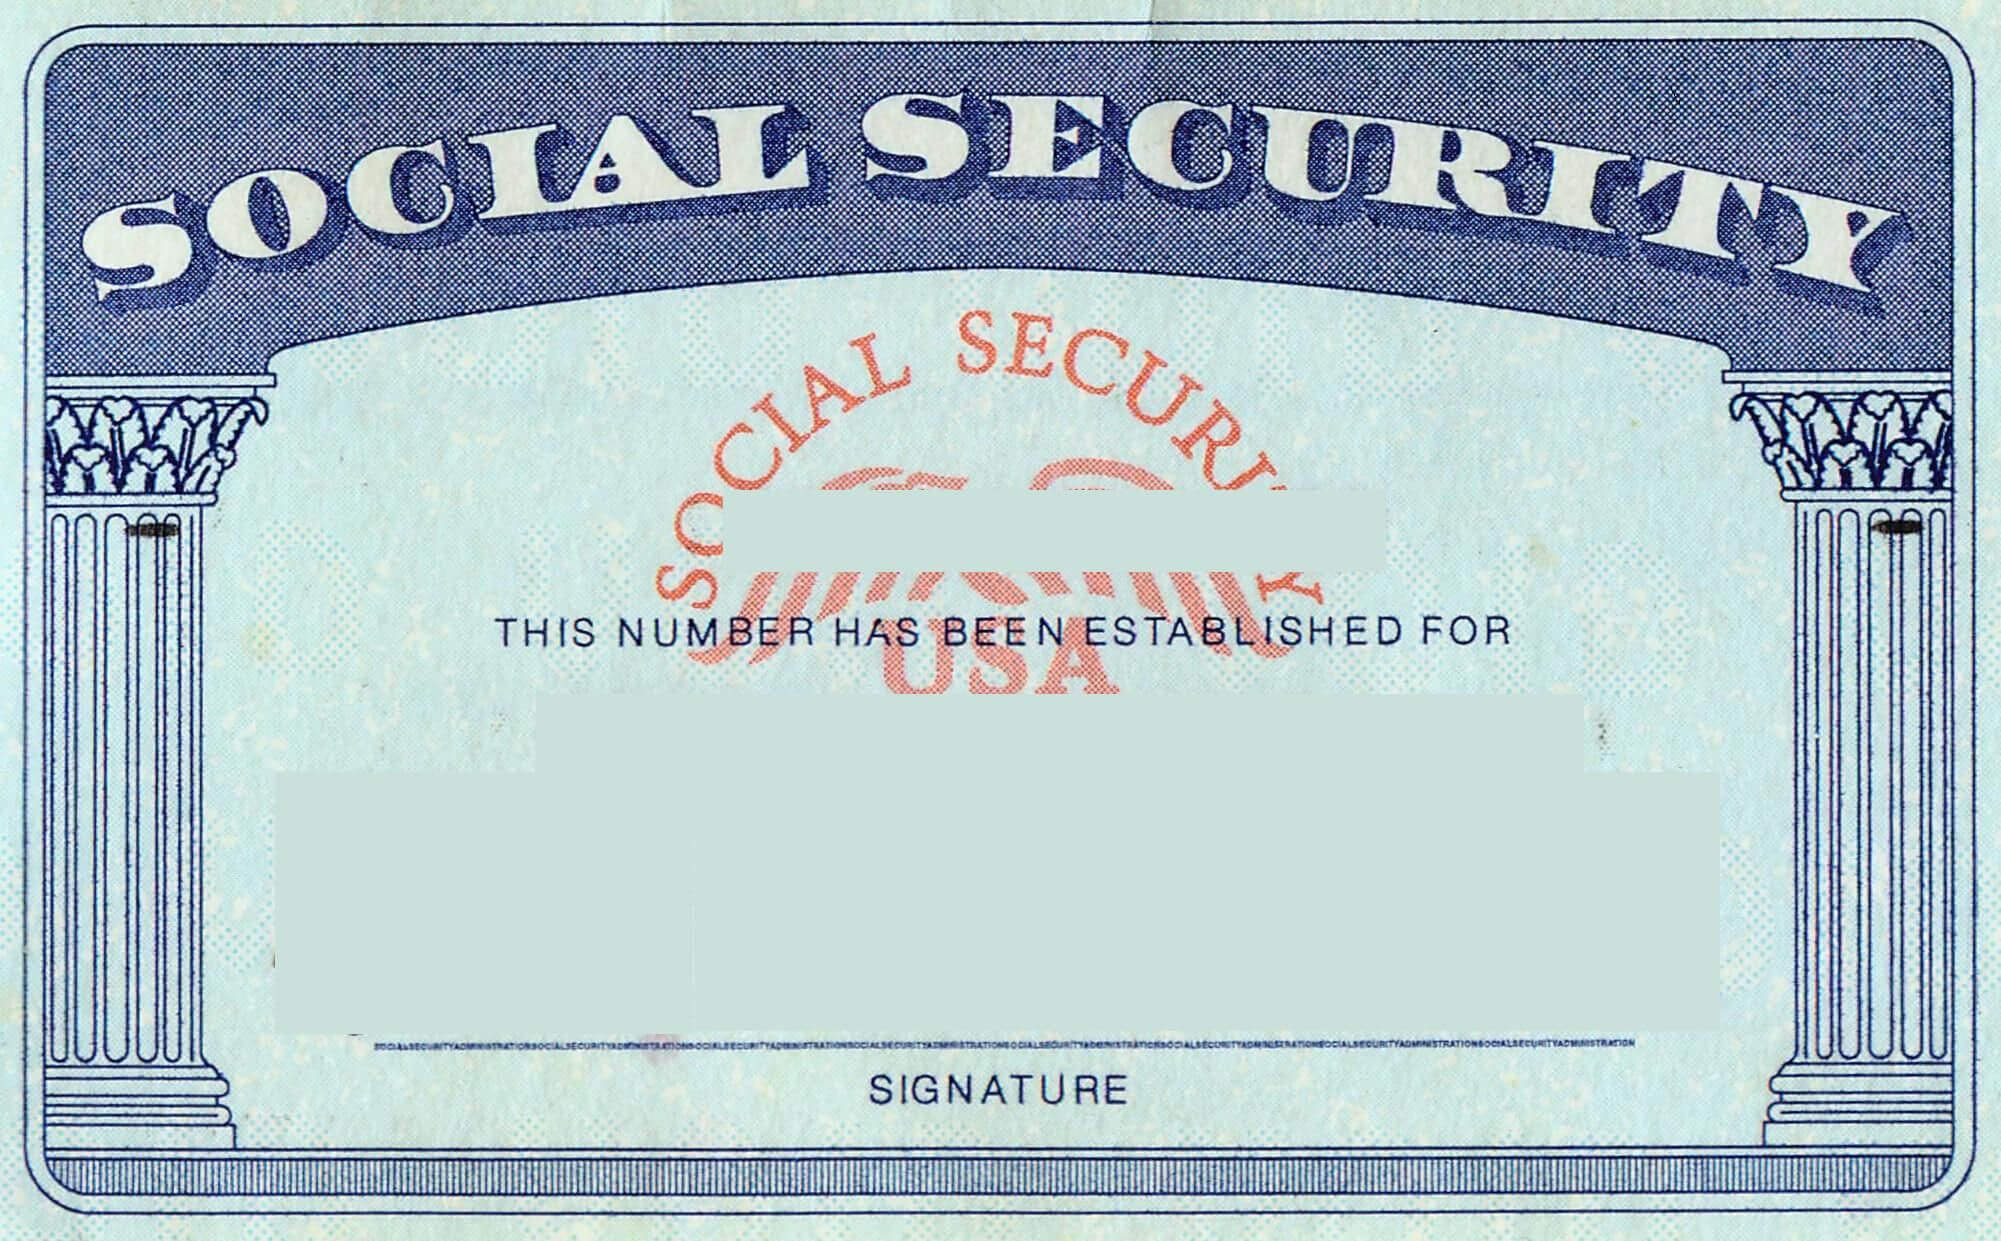 Blank Social Security Card Template | Social Security Card Intended For Blank Social Security Card Template